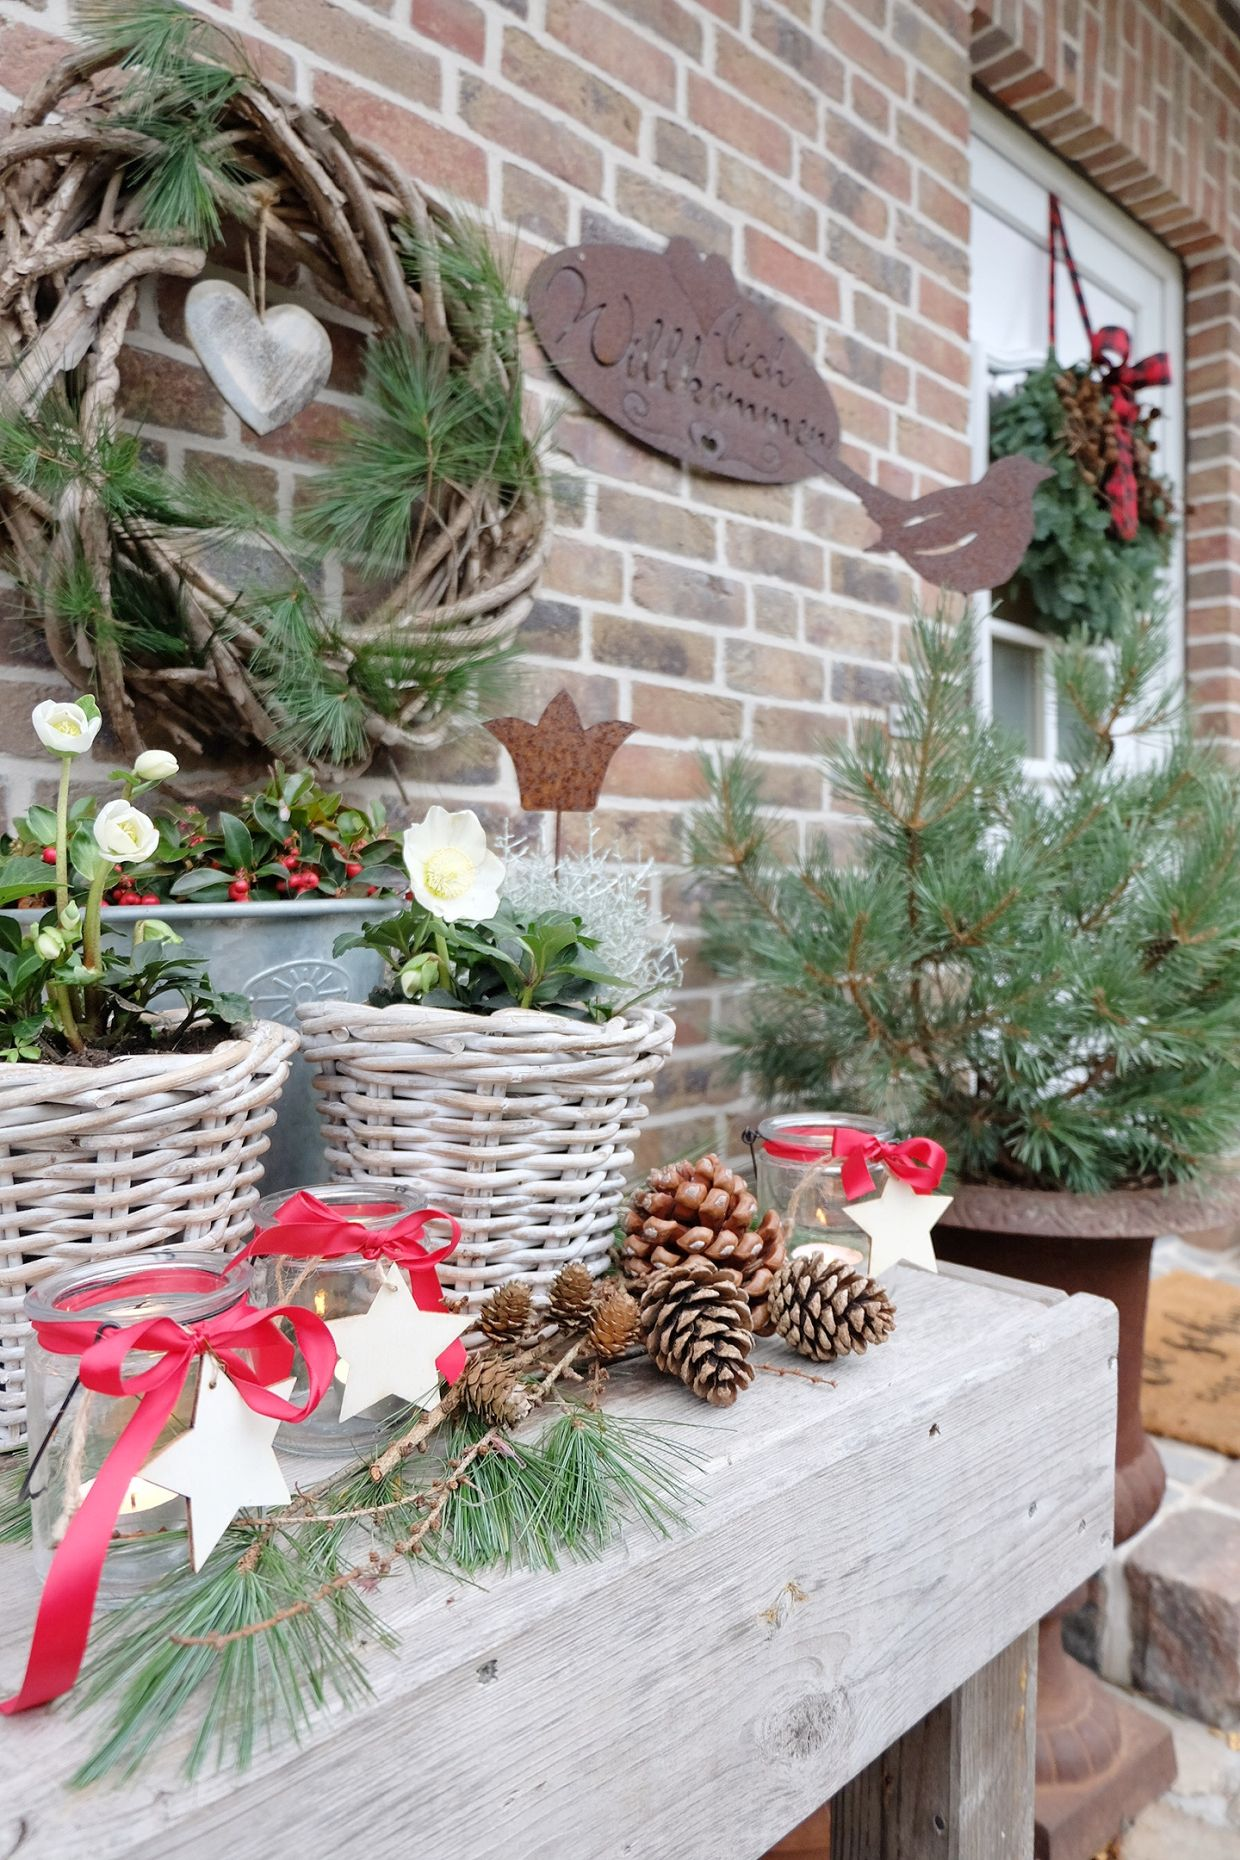 Winterlich Dekorieren Im Garten Unser Garten Wird Winterfest Holiday Decor Christmas Wreaths Decor